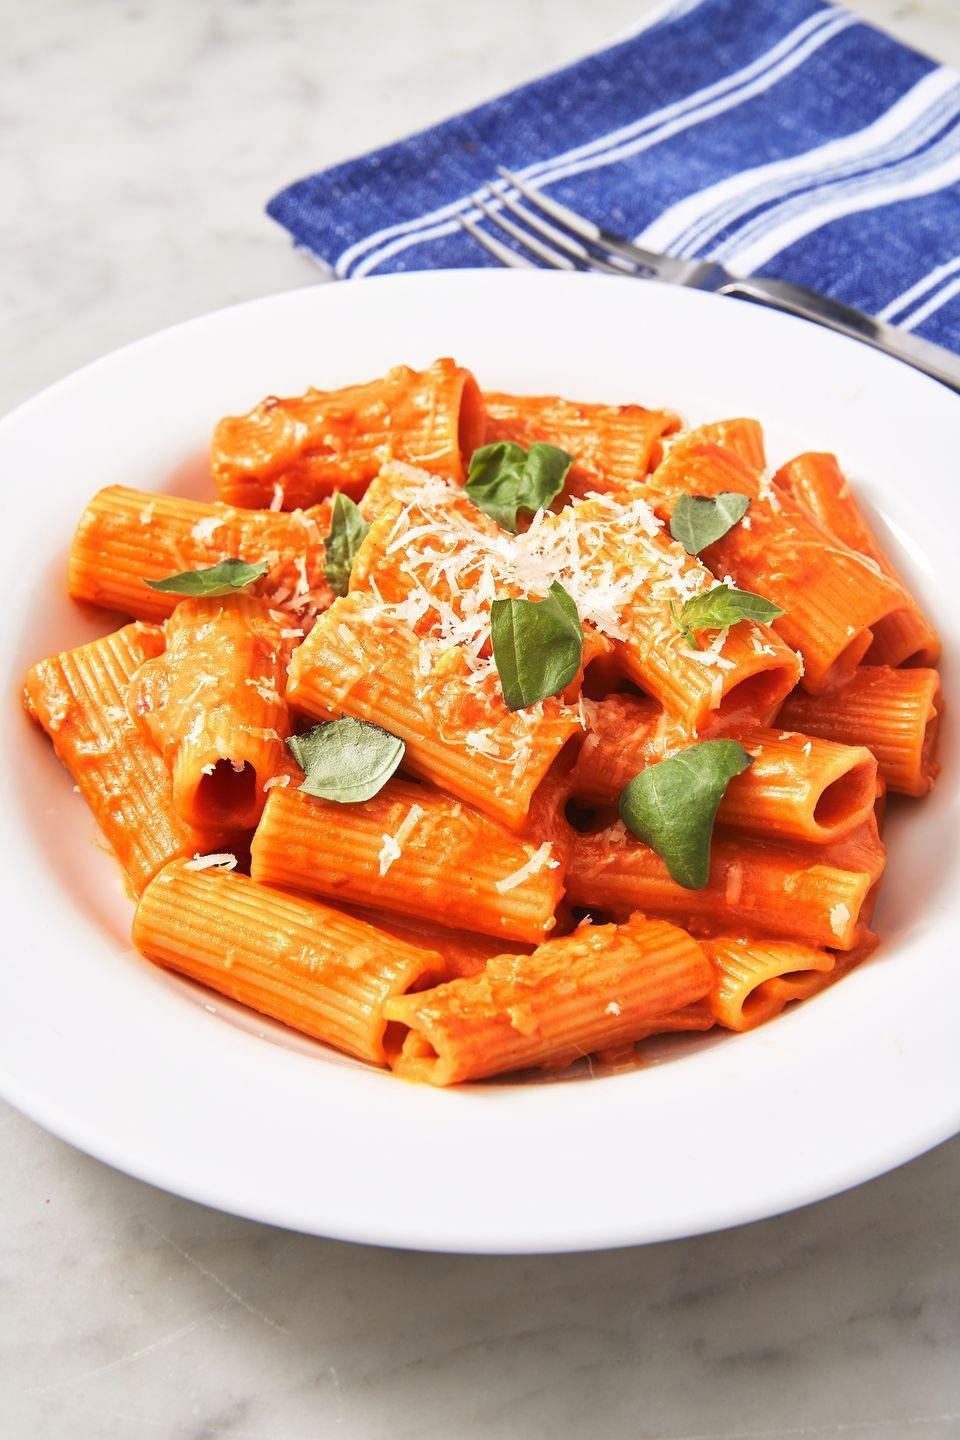 """<p>It's surprisingly easy to whip up the addictive Italian staple in your own kitchen.</p><p>Get the recipe from <a href=""""https://www.delish.com/cooking/recipe-ideas/a26556220/penne-alla-vodka-recipe/"""" rel=""""nofollow noopener"""" target=""""_blank"""" data-ylk=""""slk:Delish"""" class=""""link rapid-noclick-resp"""">Delish</a>.</p>"""